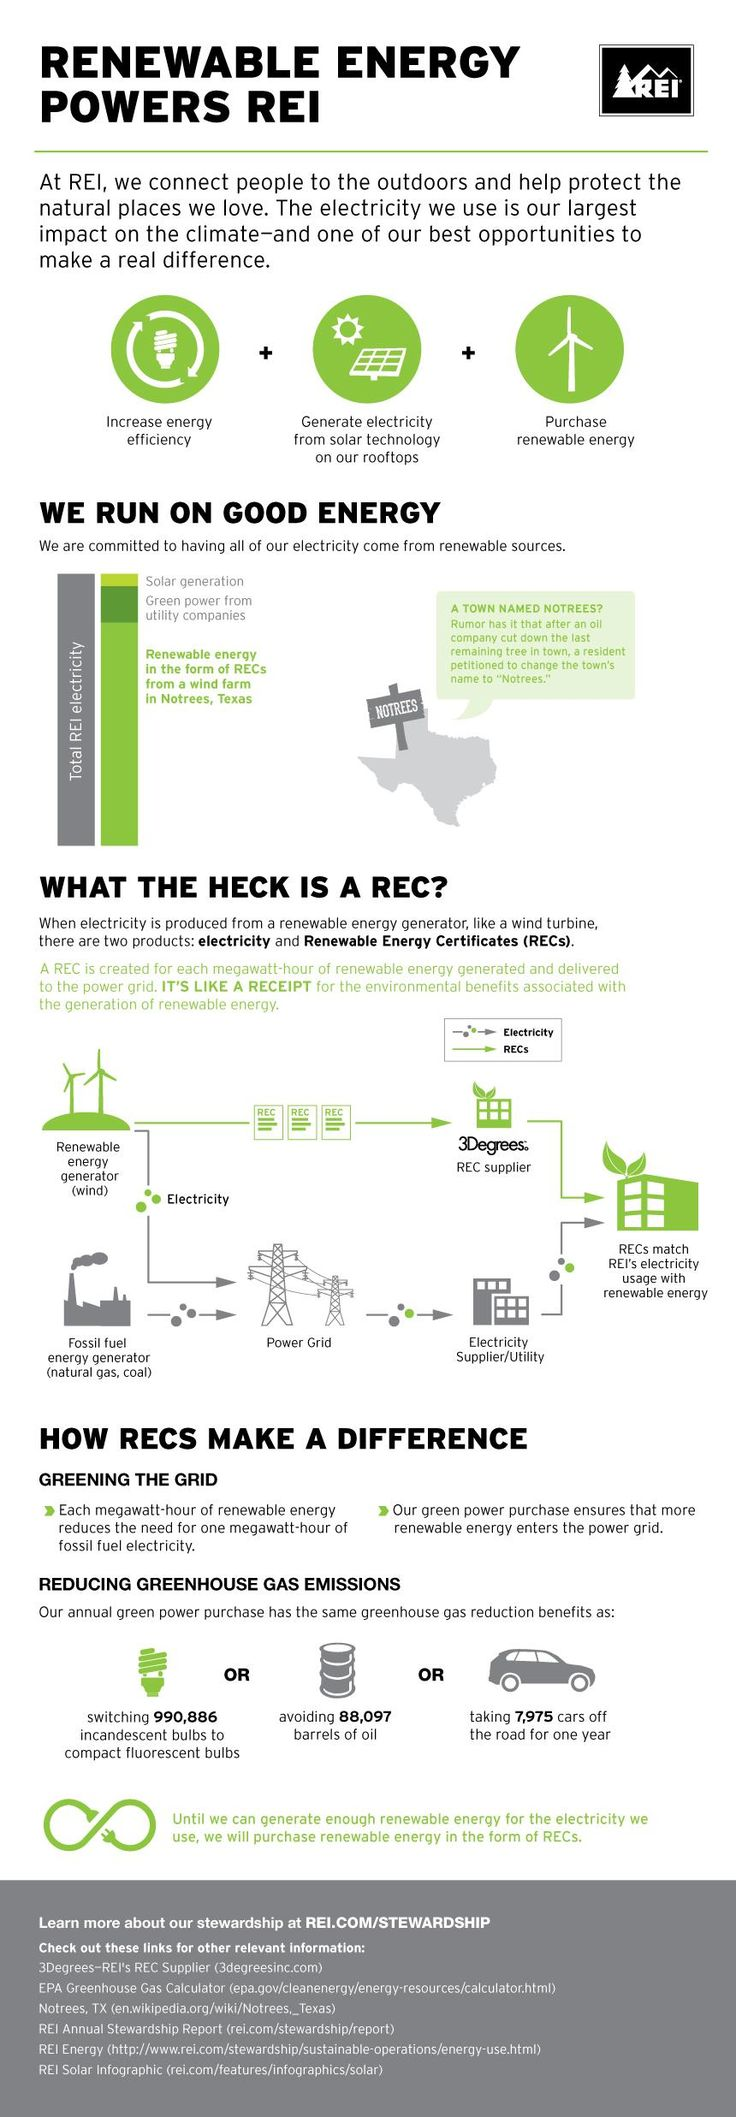 REI's green power strategy: renewable energy + solar generation + renewable energy certificates (RECs).